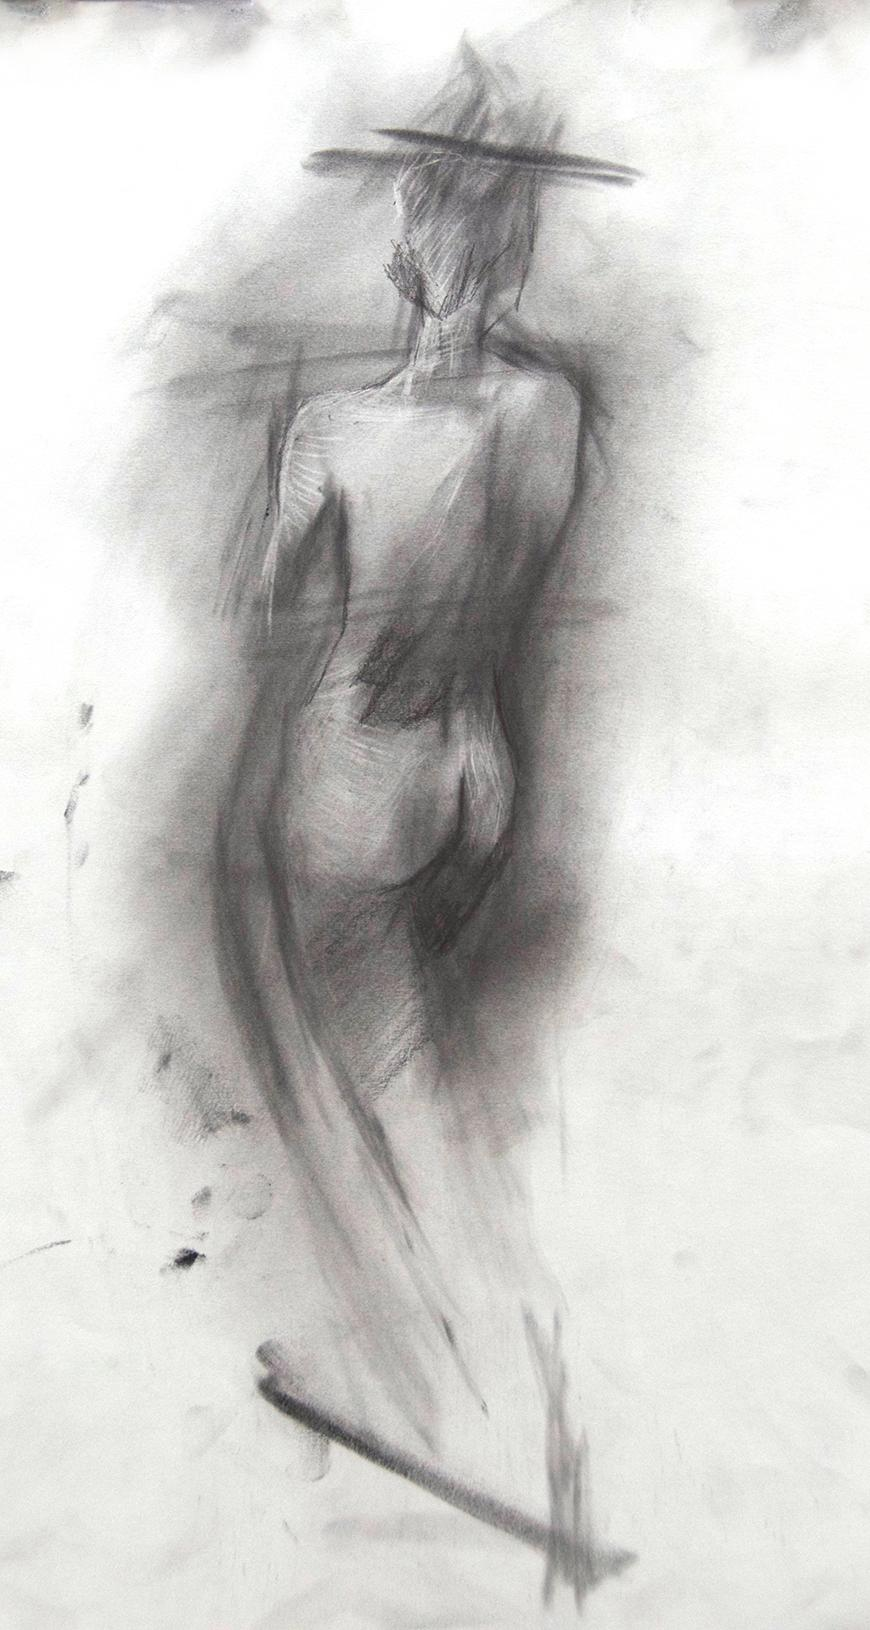 Drawing of a woman's torso from behind.